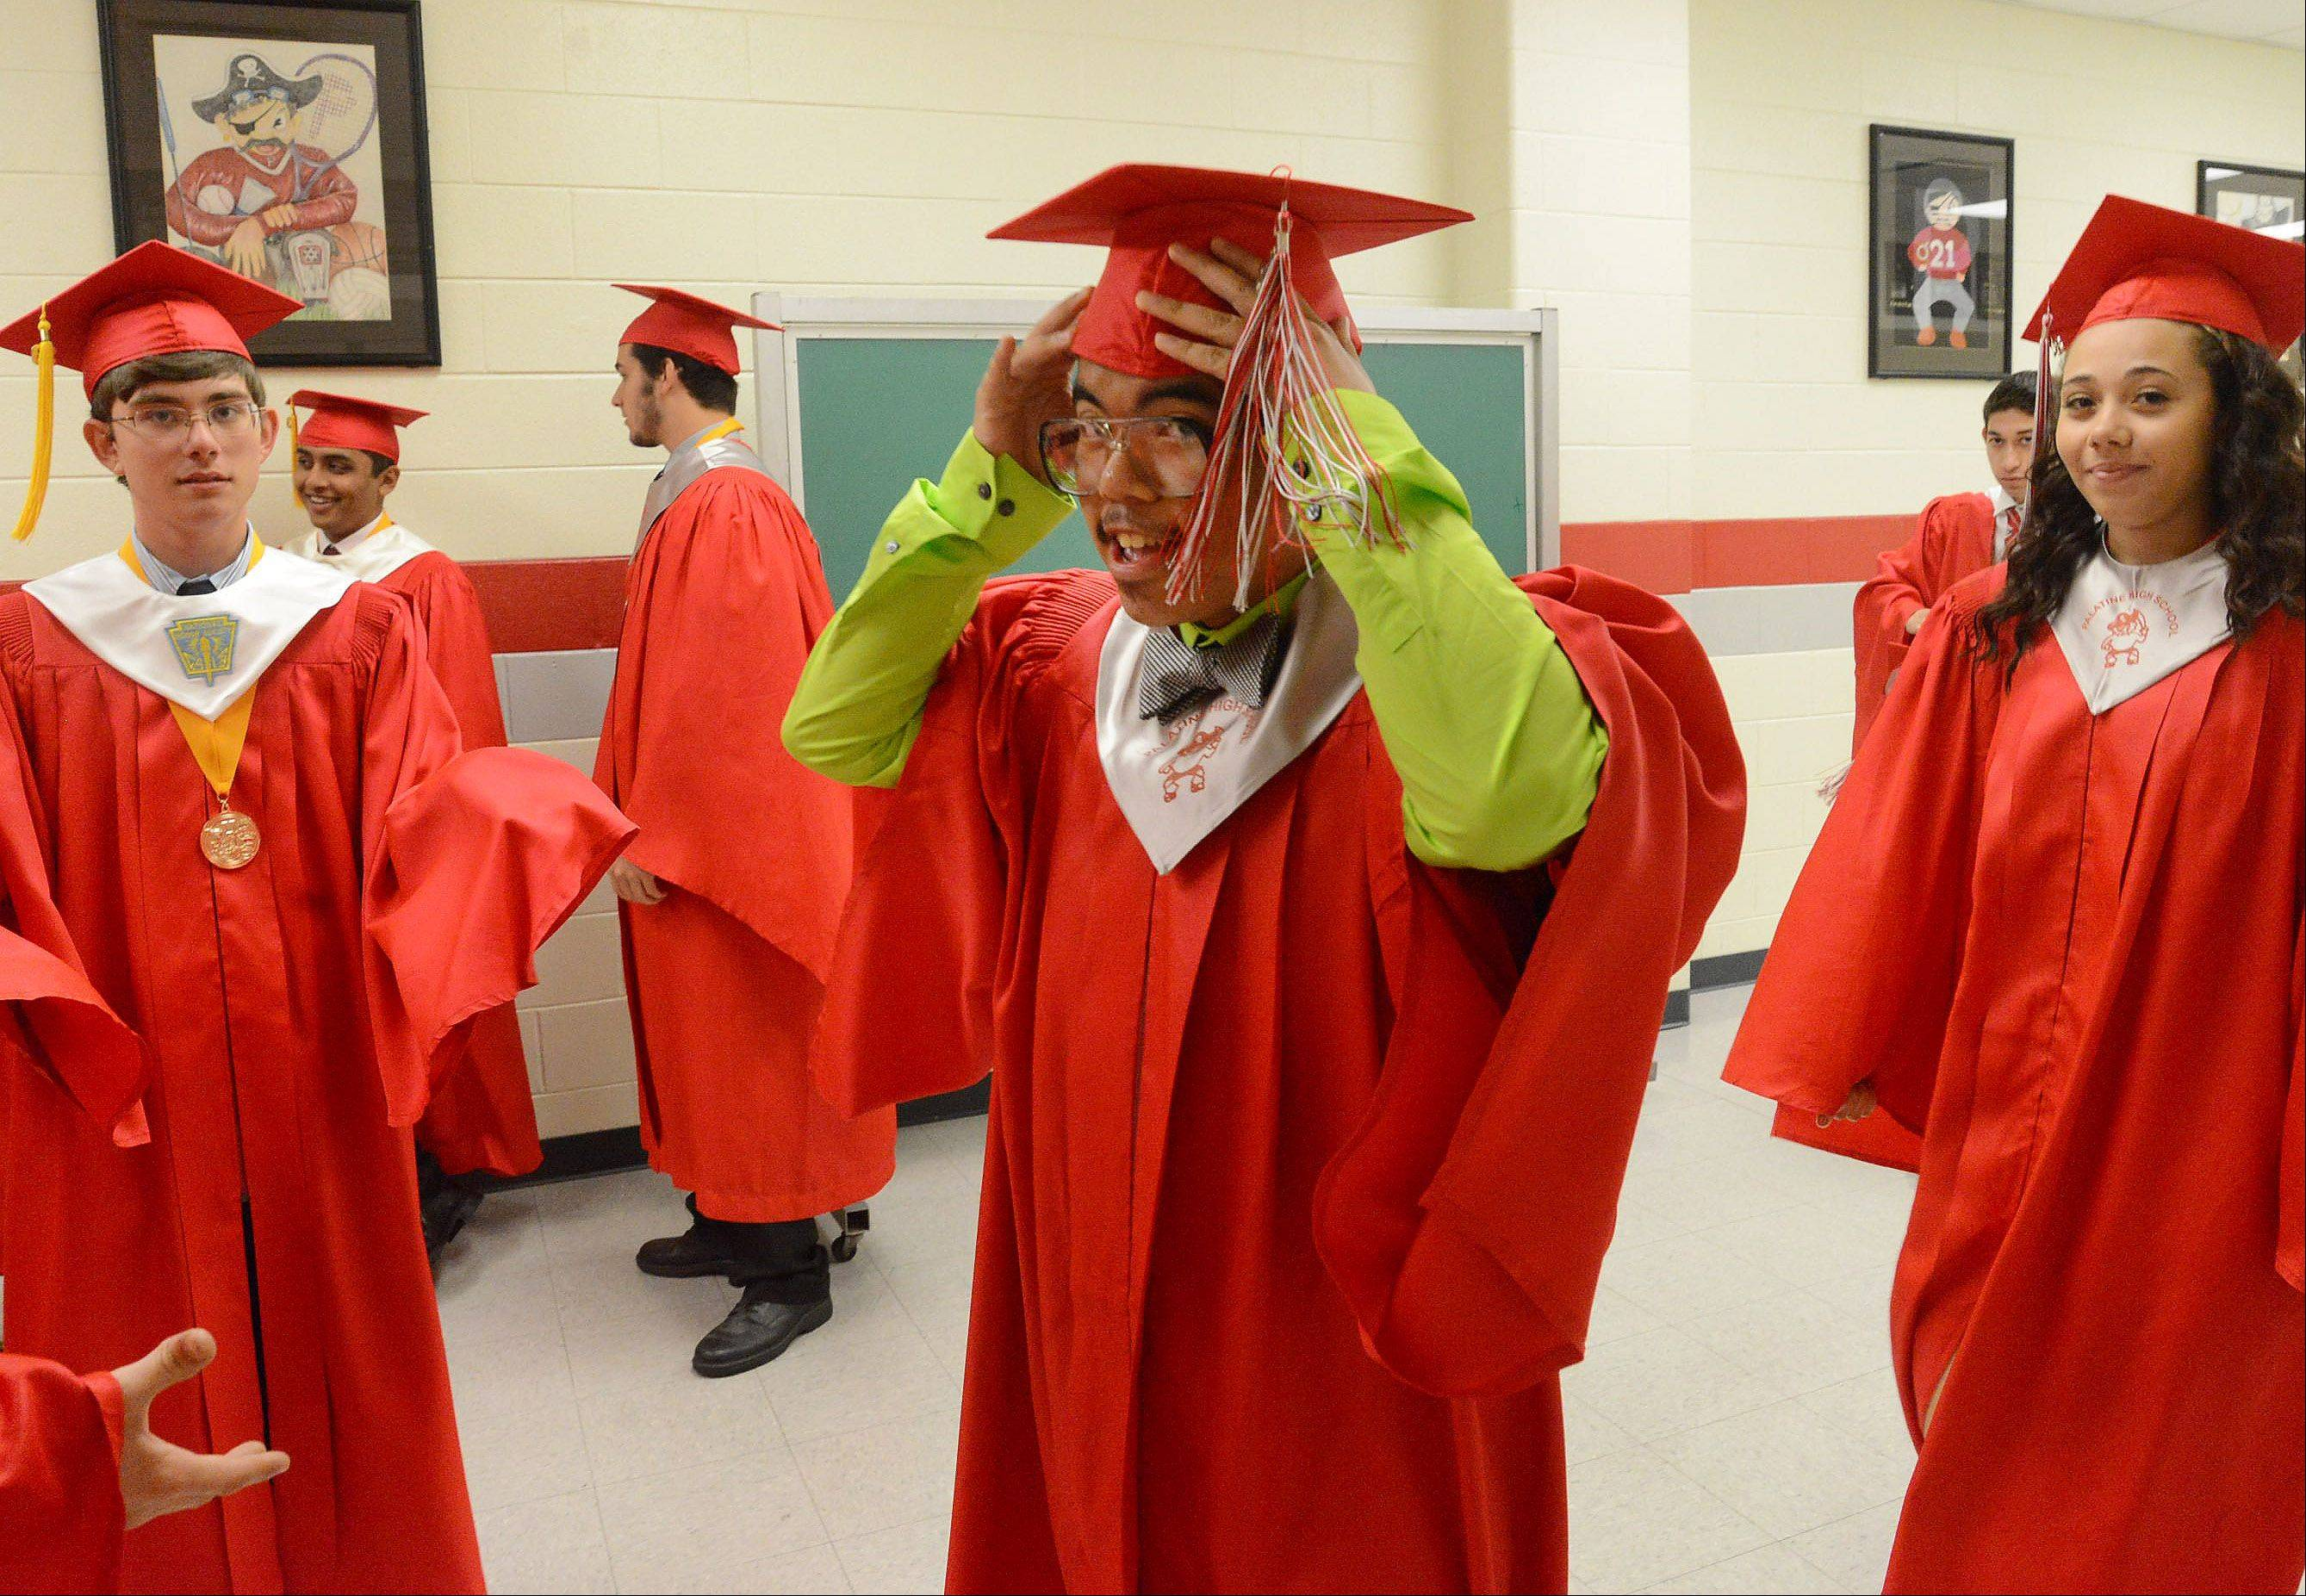 Oscar Rilloraza rushes to get to his place in line before the Palatine High School graduation.